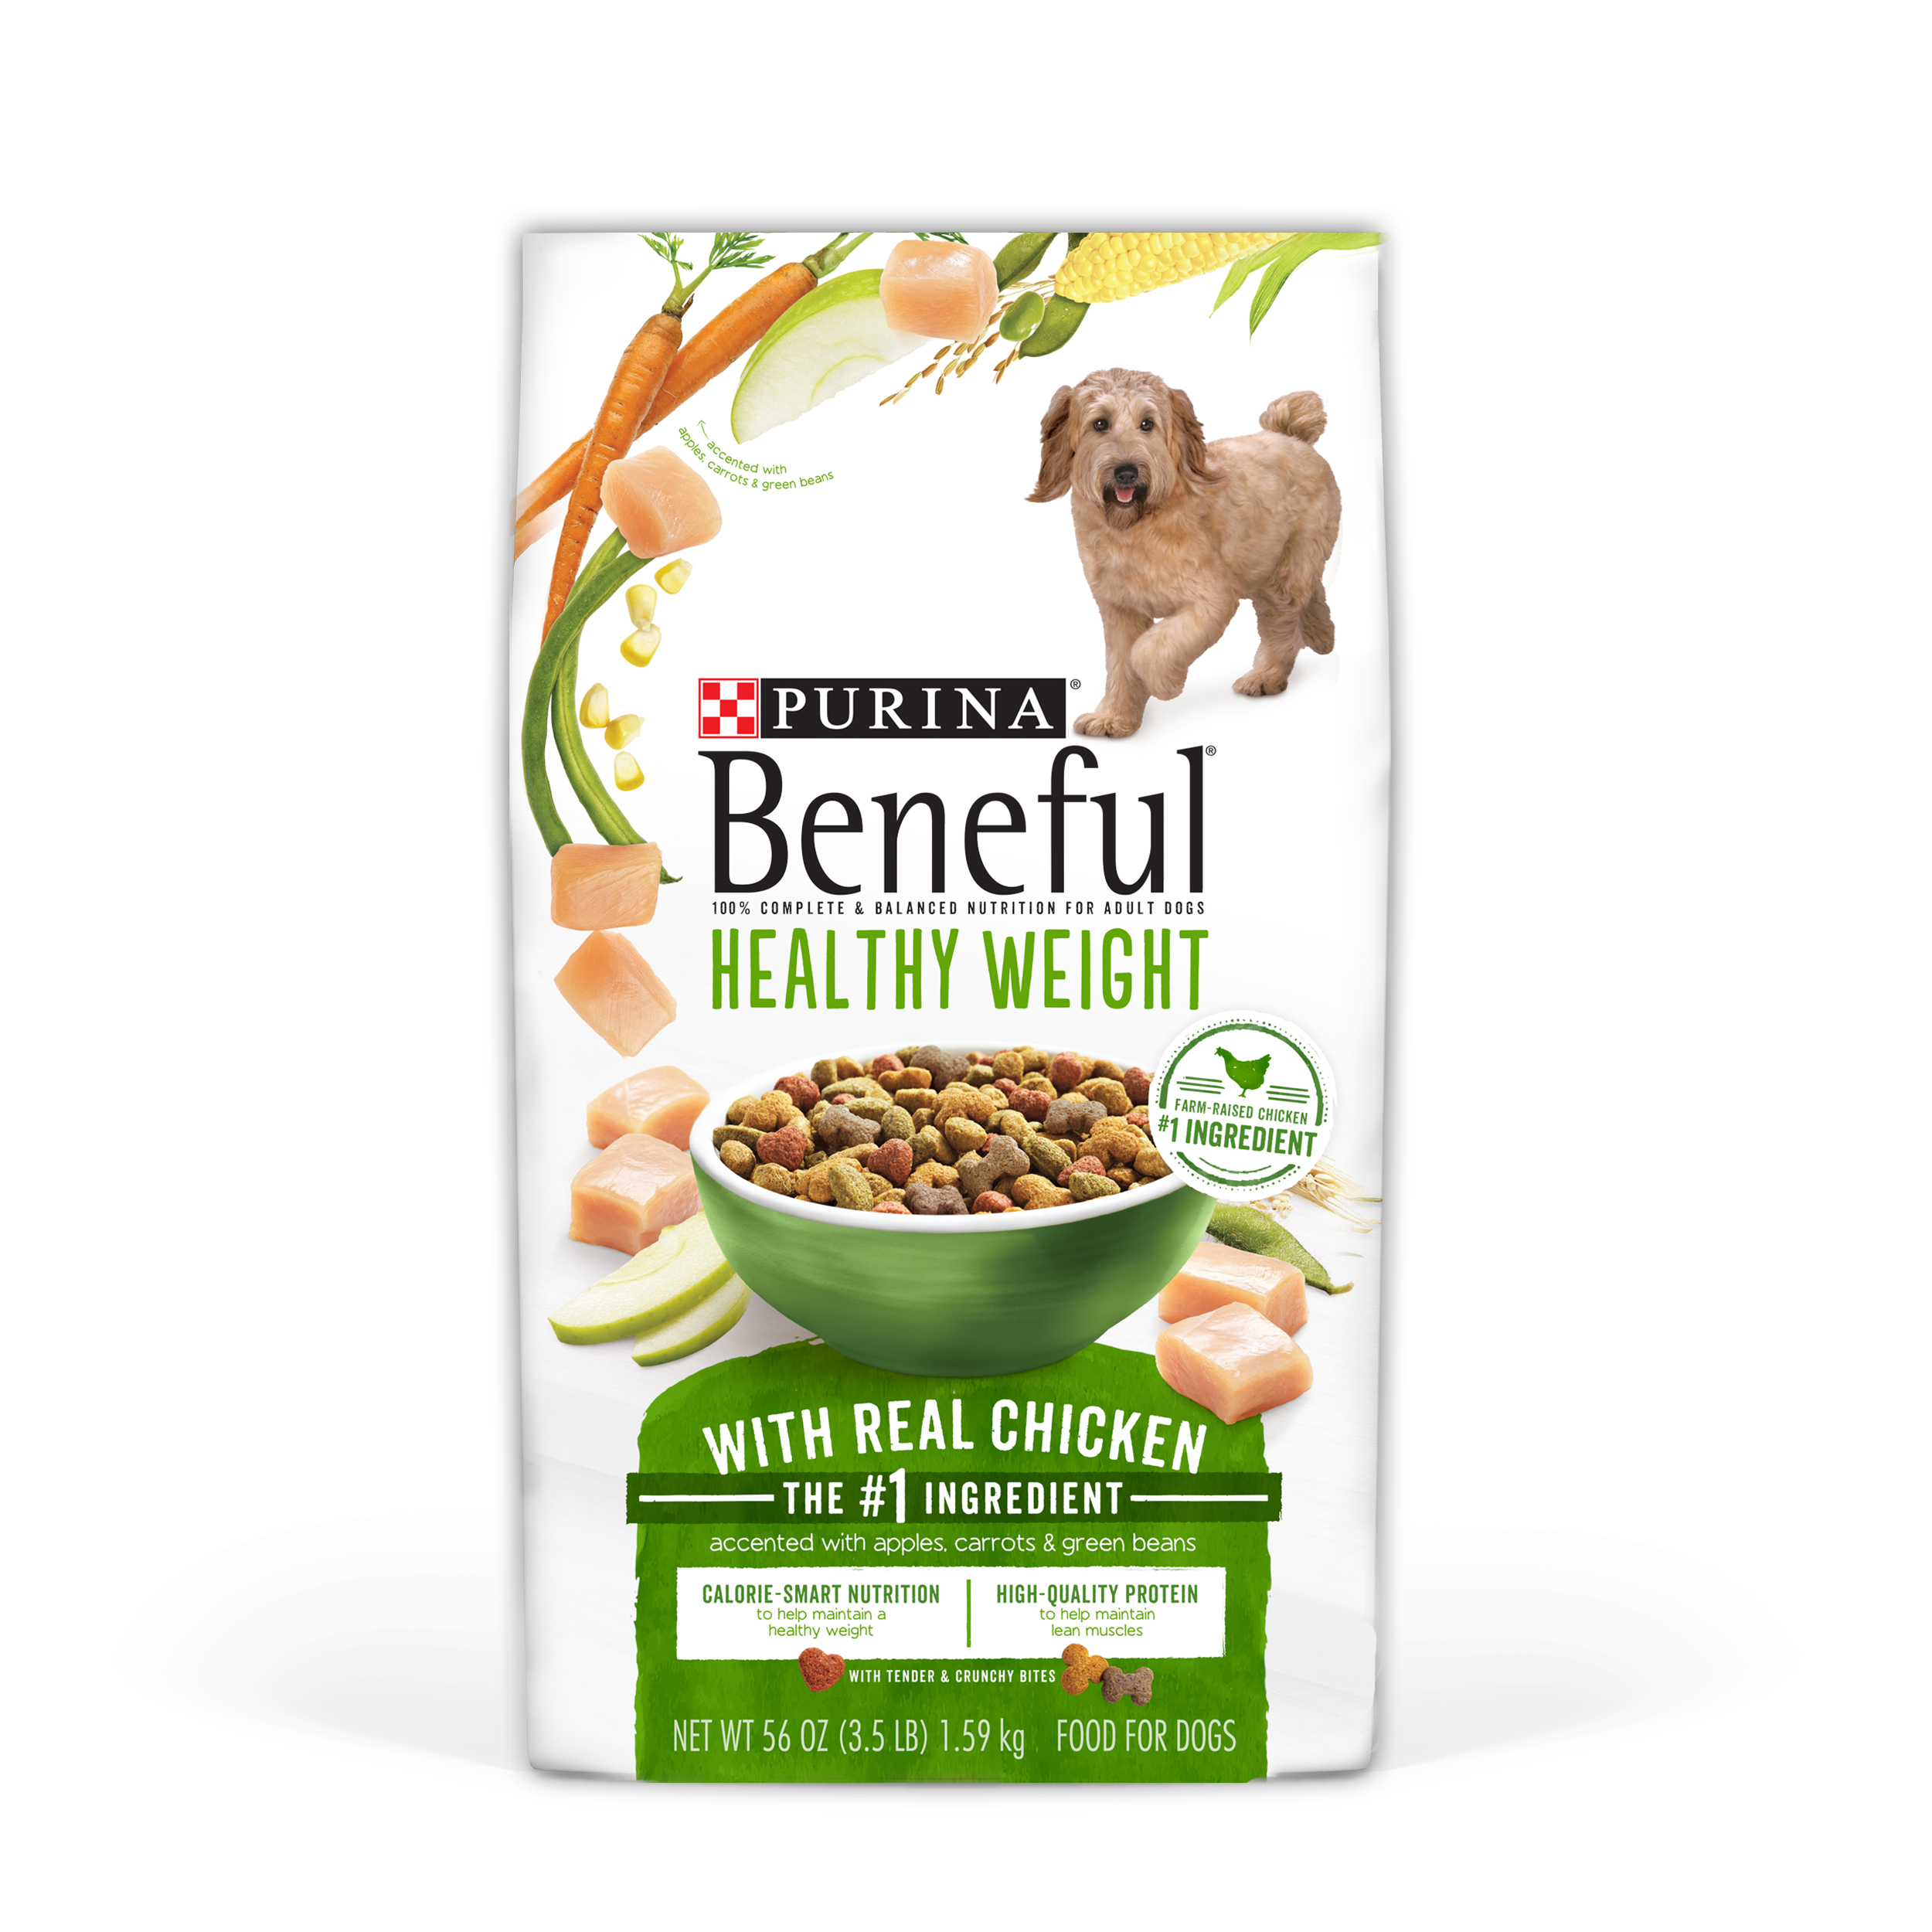 Purina Beneful Healthy Weight With Real Chicken Adult Dry Dog Food - 3.5 lb. Bag